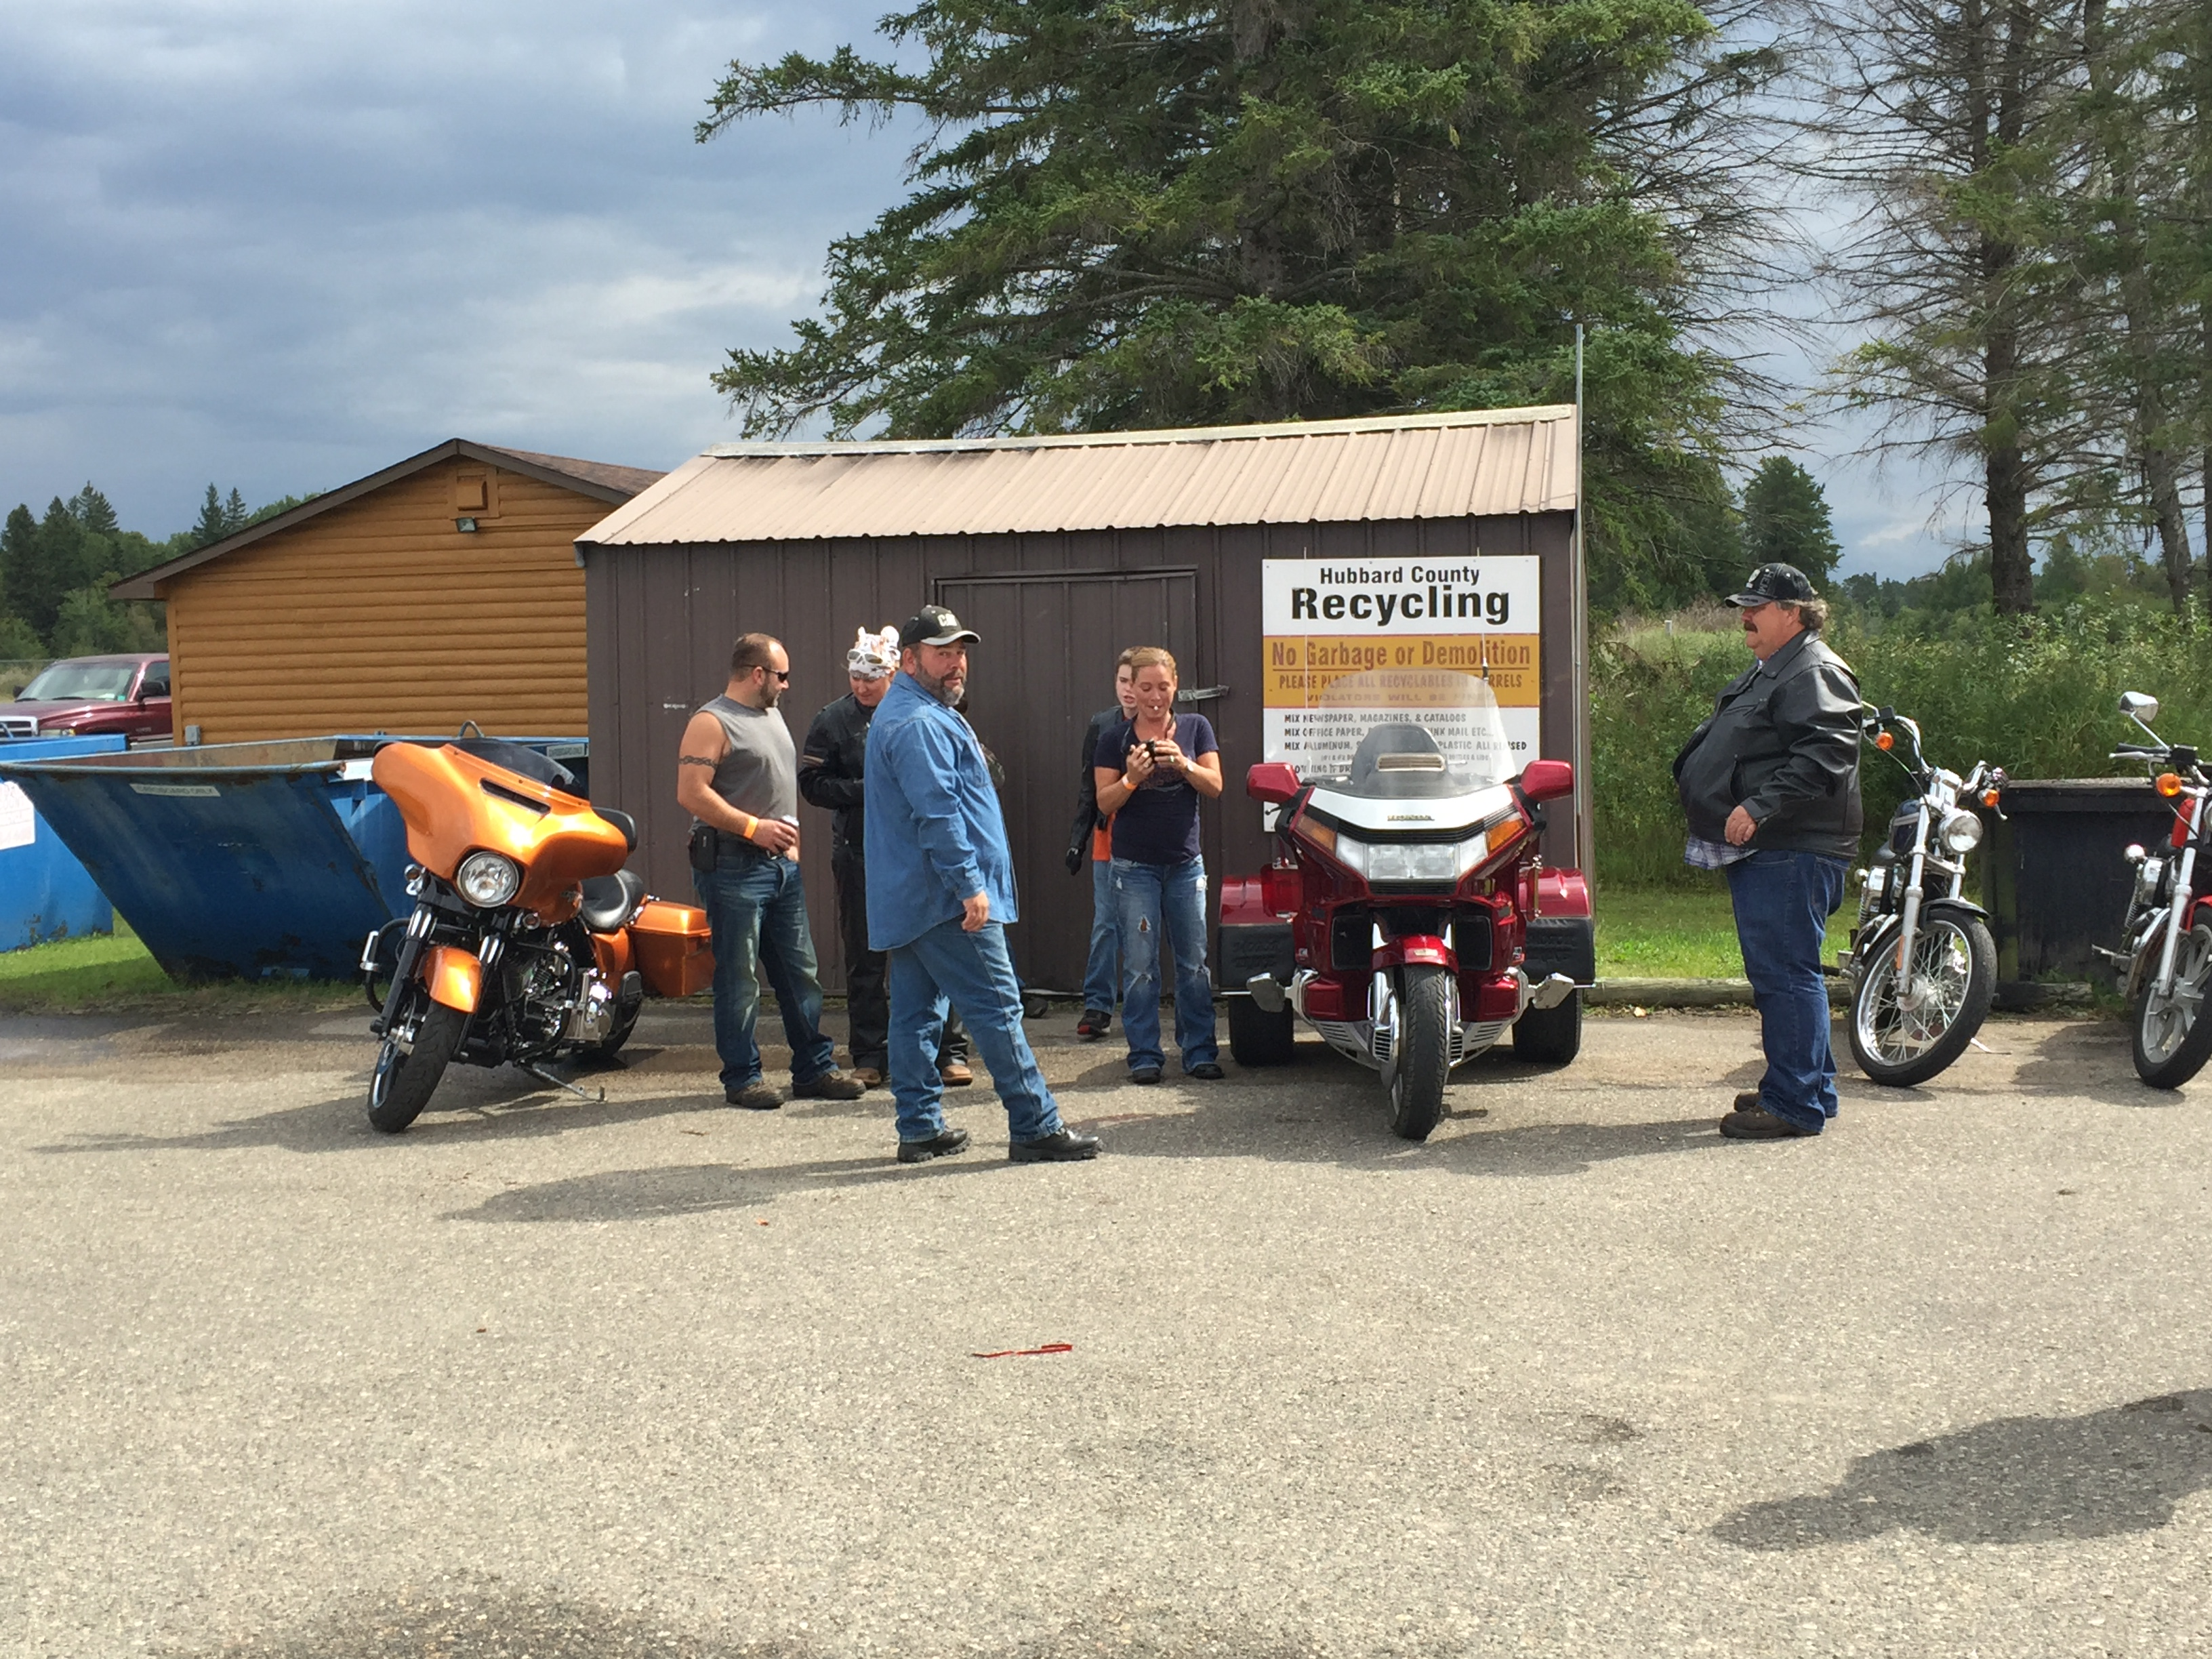 NRCCA motorcycles and riders standing in parking lot